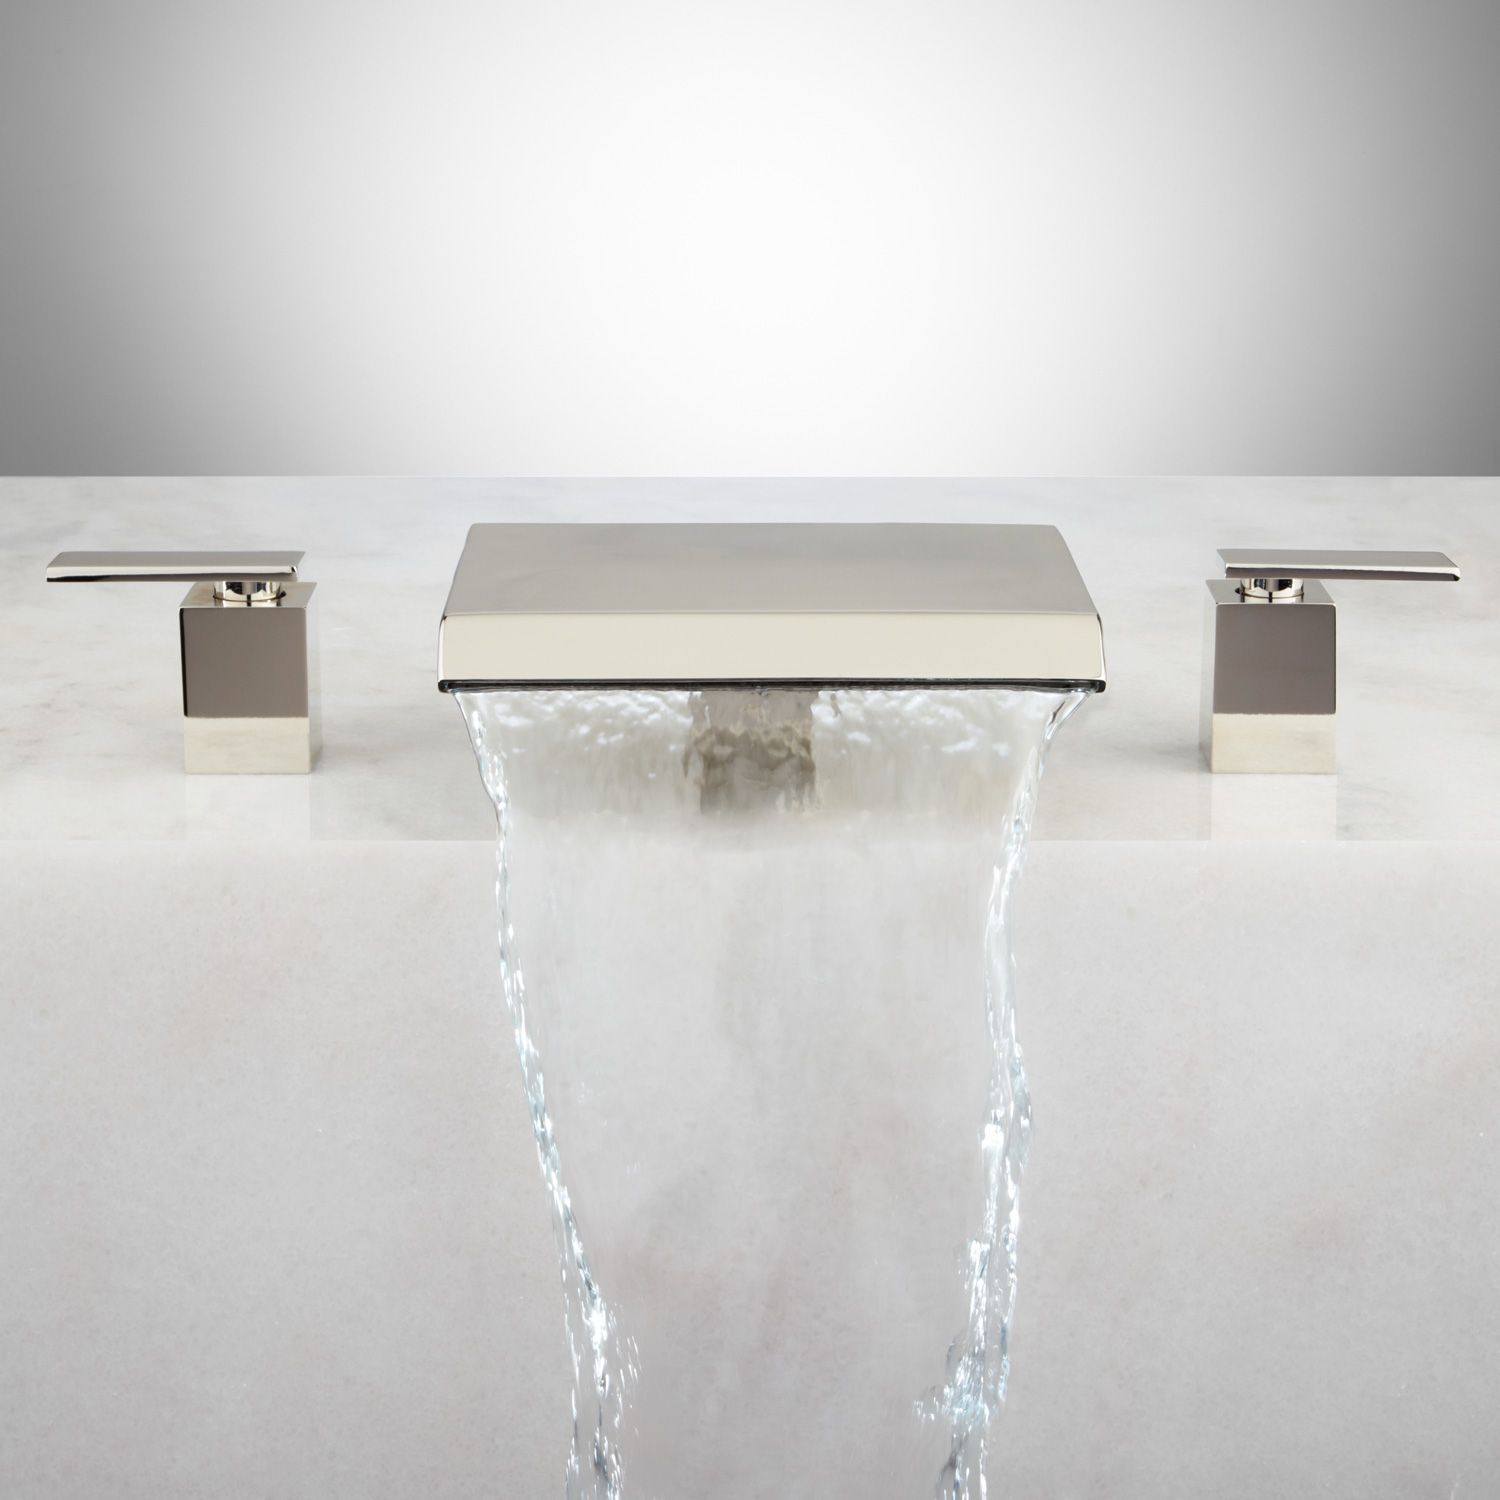 Lavelle Waterfall Roman Tub Faucet | Polished nickel, Faucet and Tubs